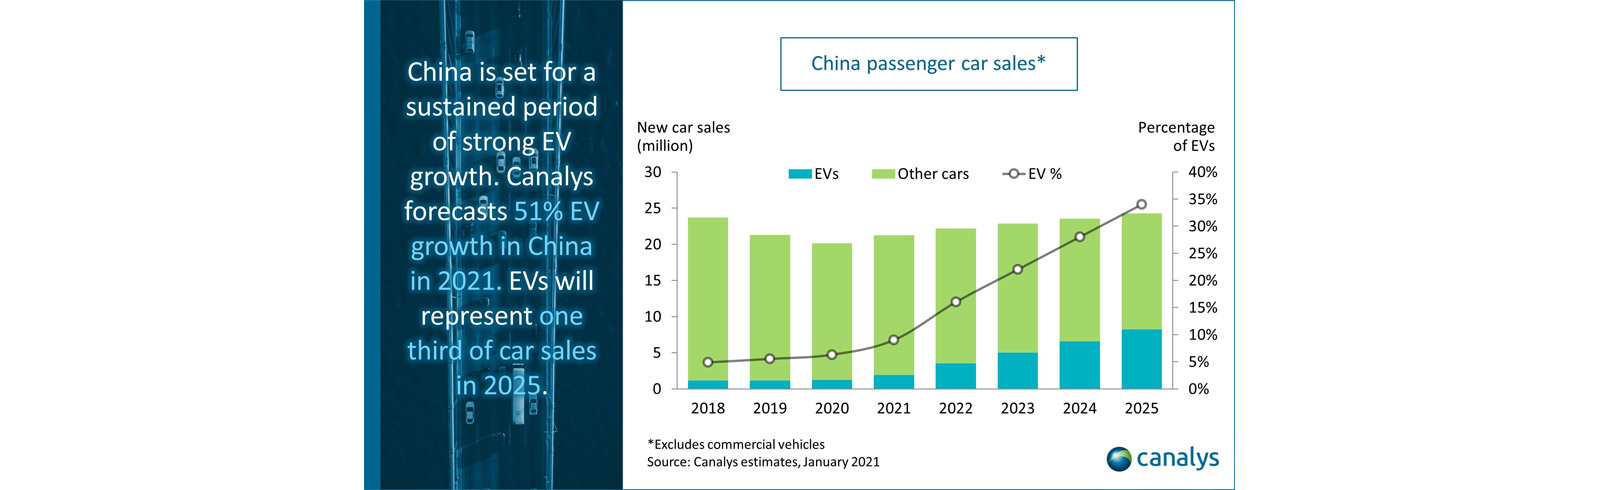 Canalys: China's EV sales to grow by more than 50% in 2021